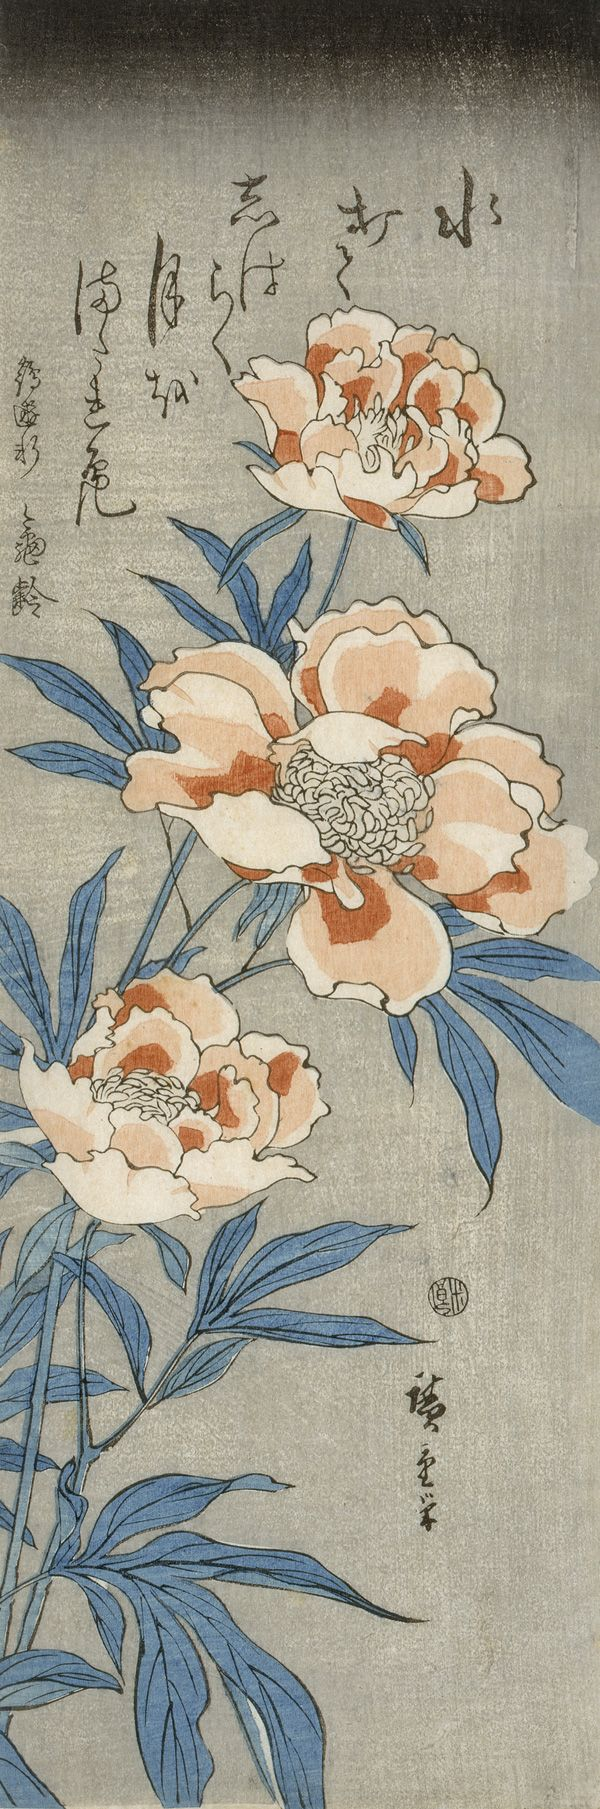 """Three Peonies"" by Hiroshige (ca. 1830s). Source: The Freer and Sackler Galleries of the Smithsonian Institution."